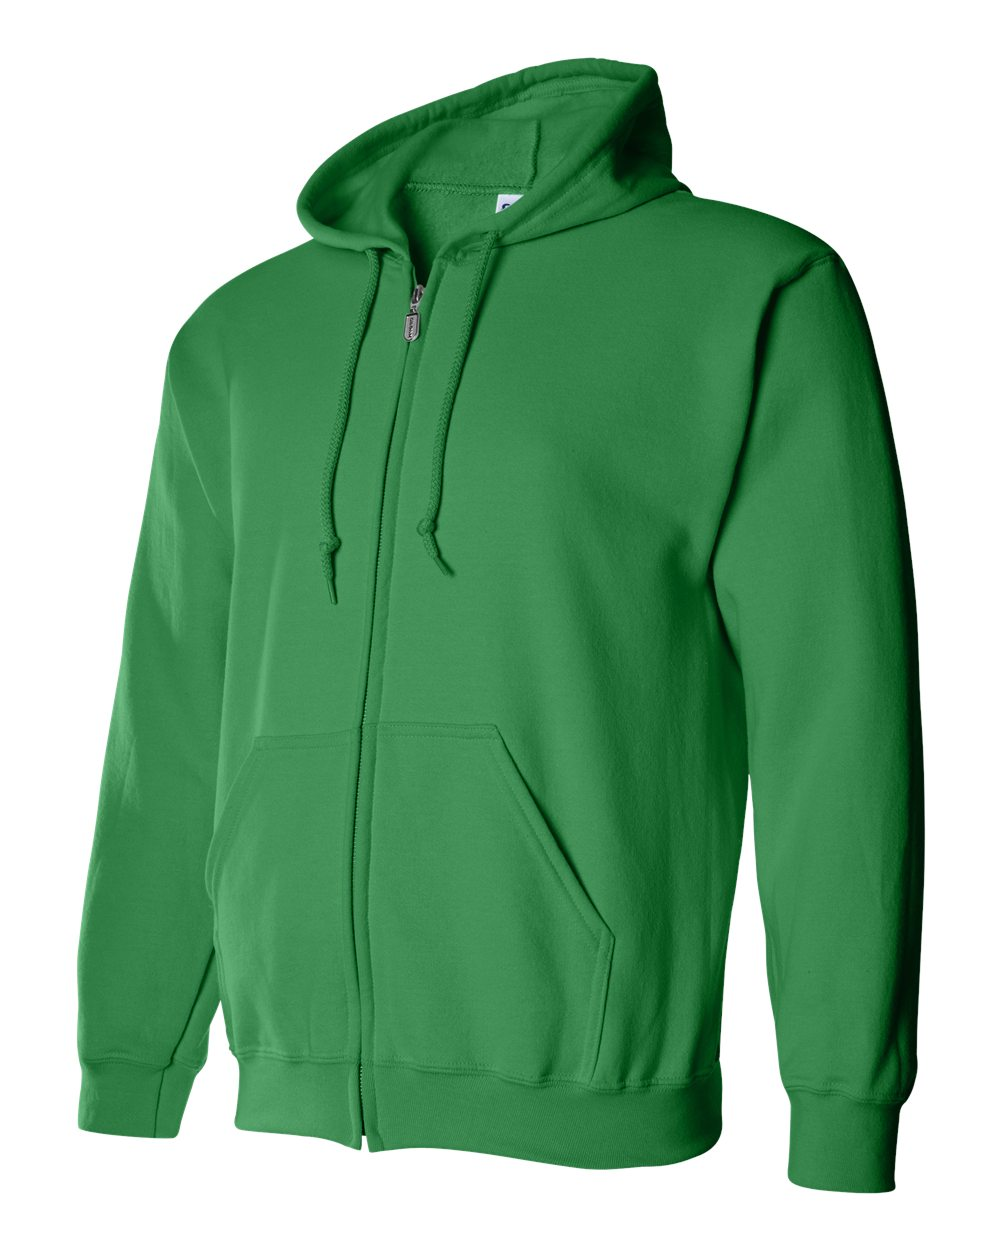 Gildan Heavy Blend Full Zip Hoodie GIL18600 Irish Green